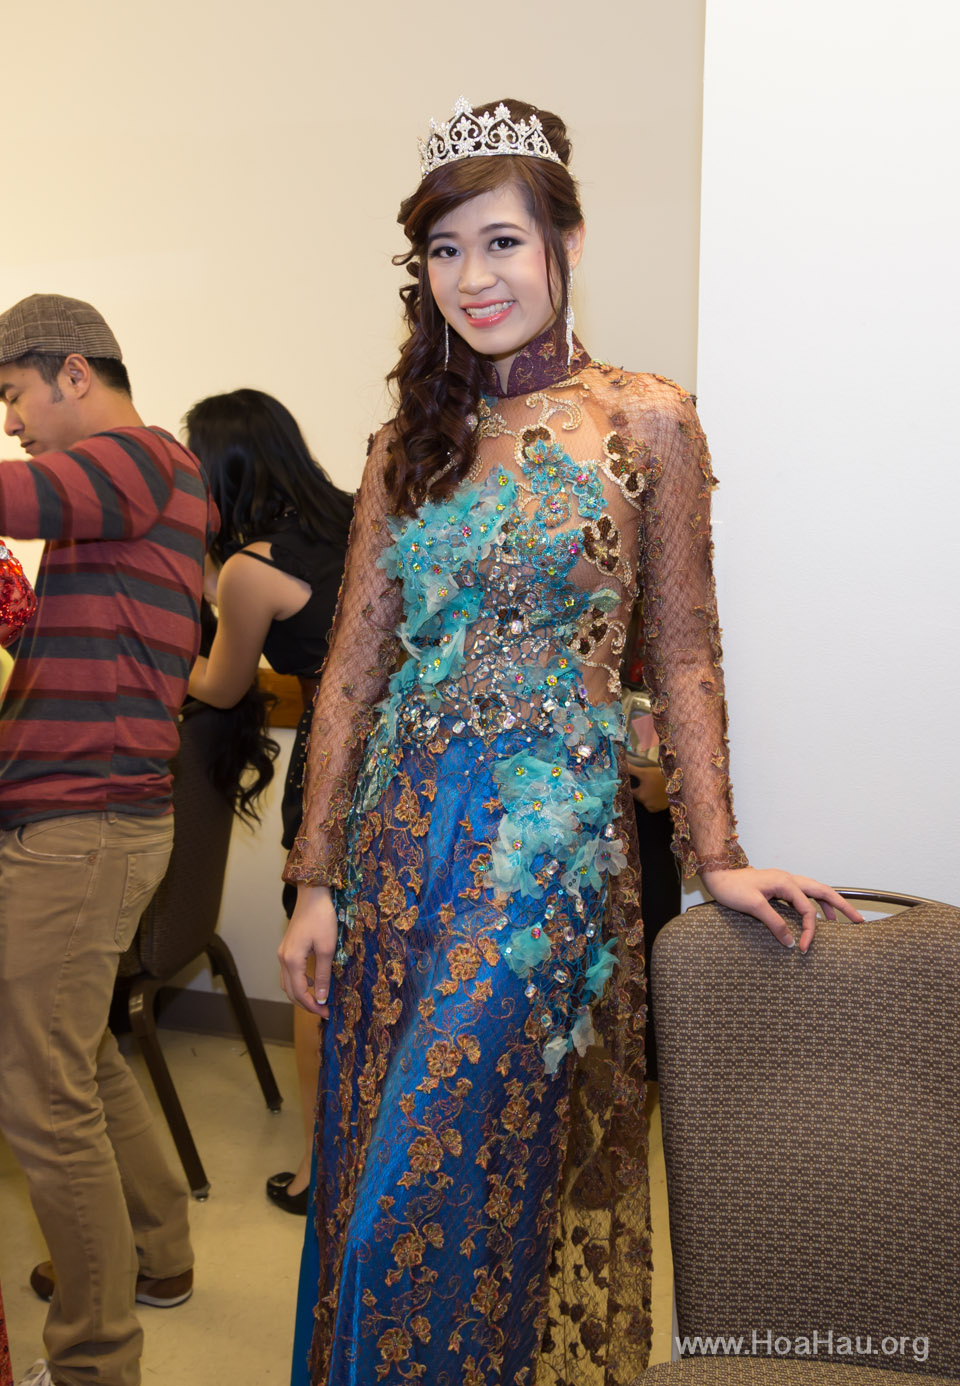 Miss Vietnam of Northern California 2014 - Hoa Hau Ao Dai Bac Cali 2014 - Behind the Scenes - Image 216